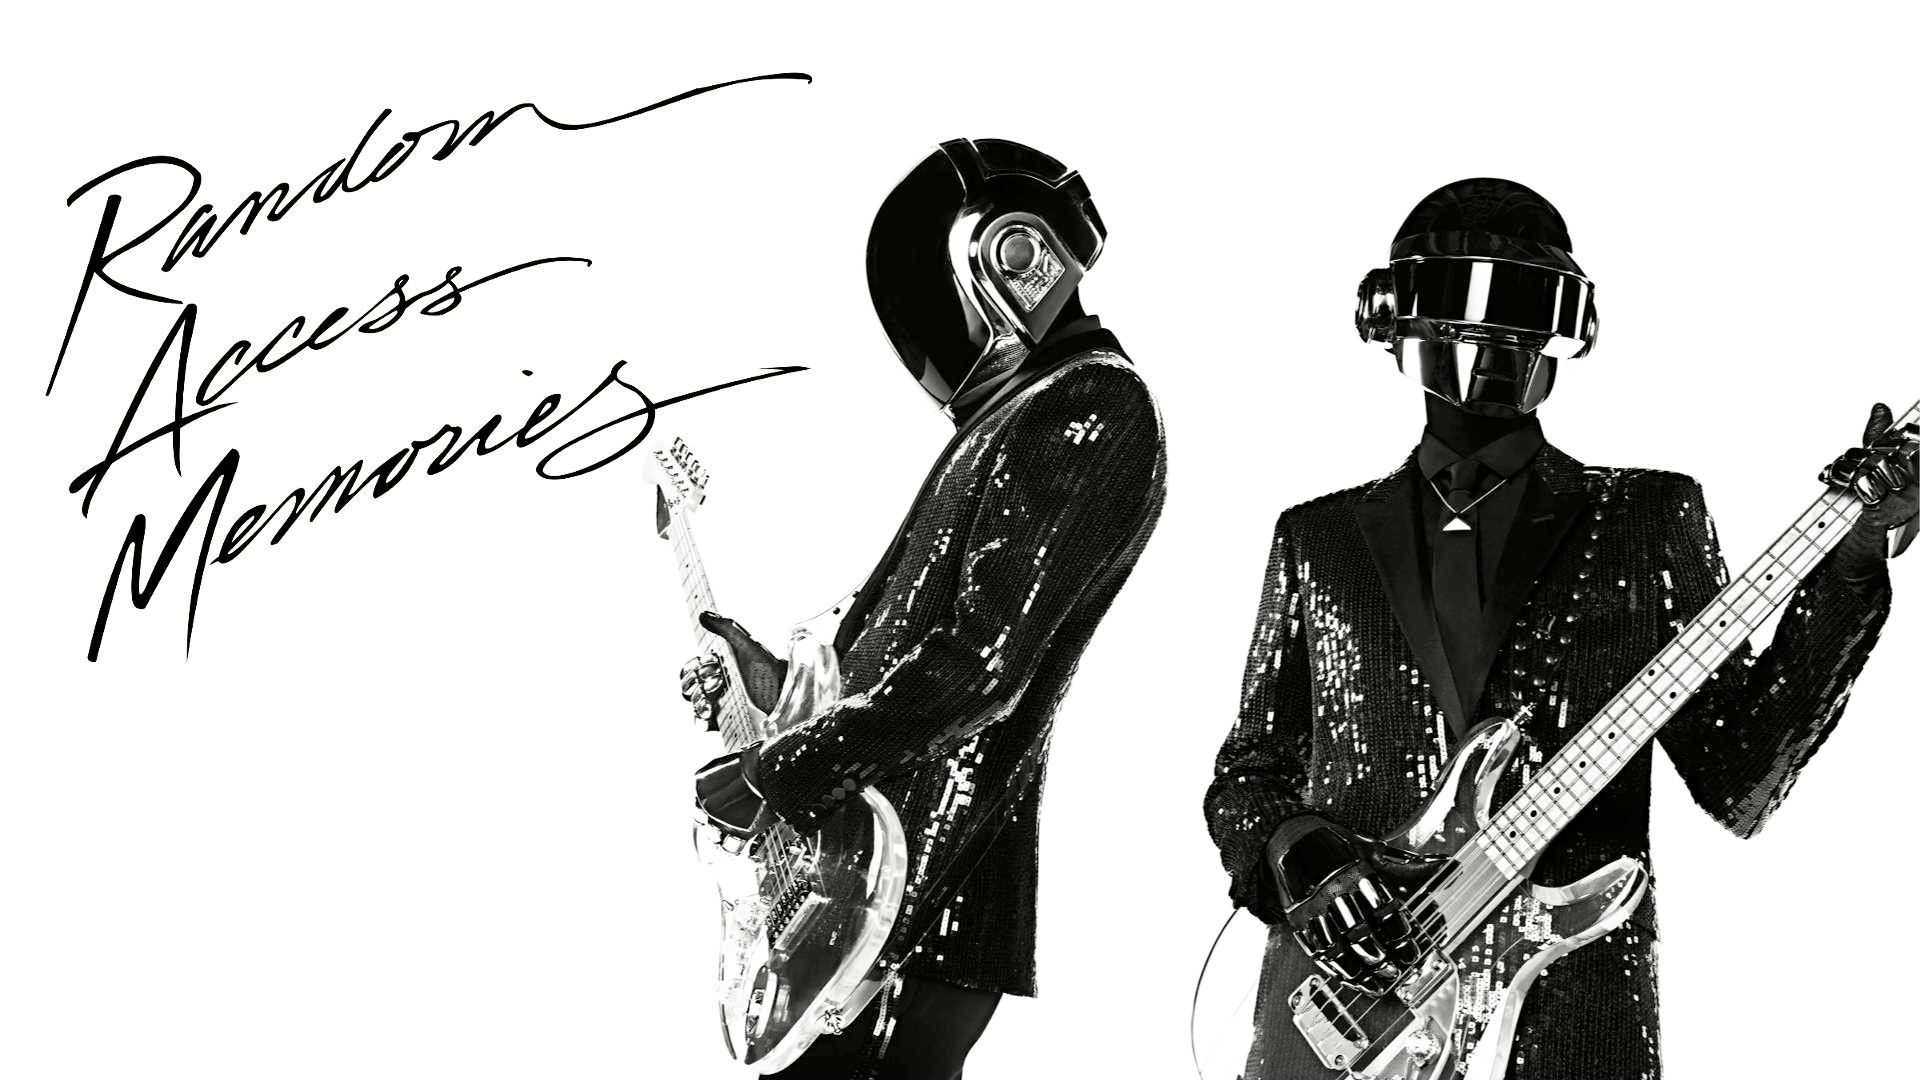 Daft Punk Wallpaper Random Access Memories 1080p